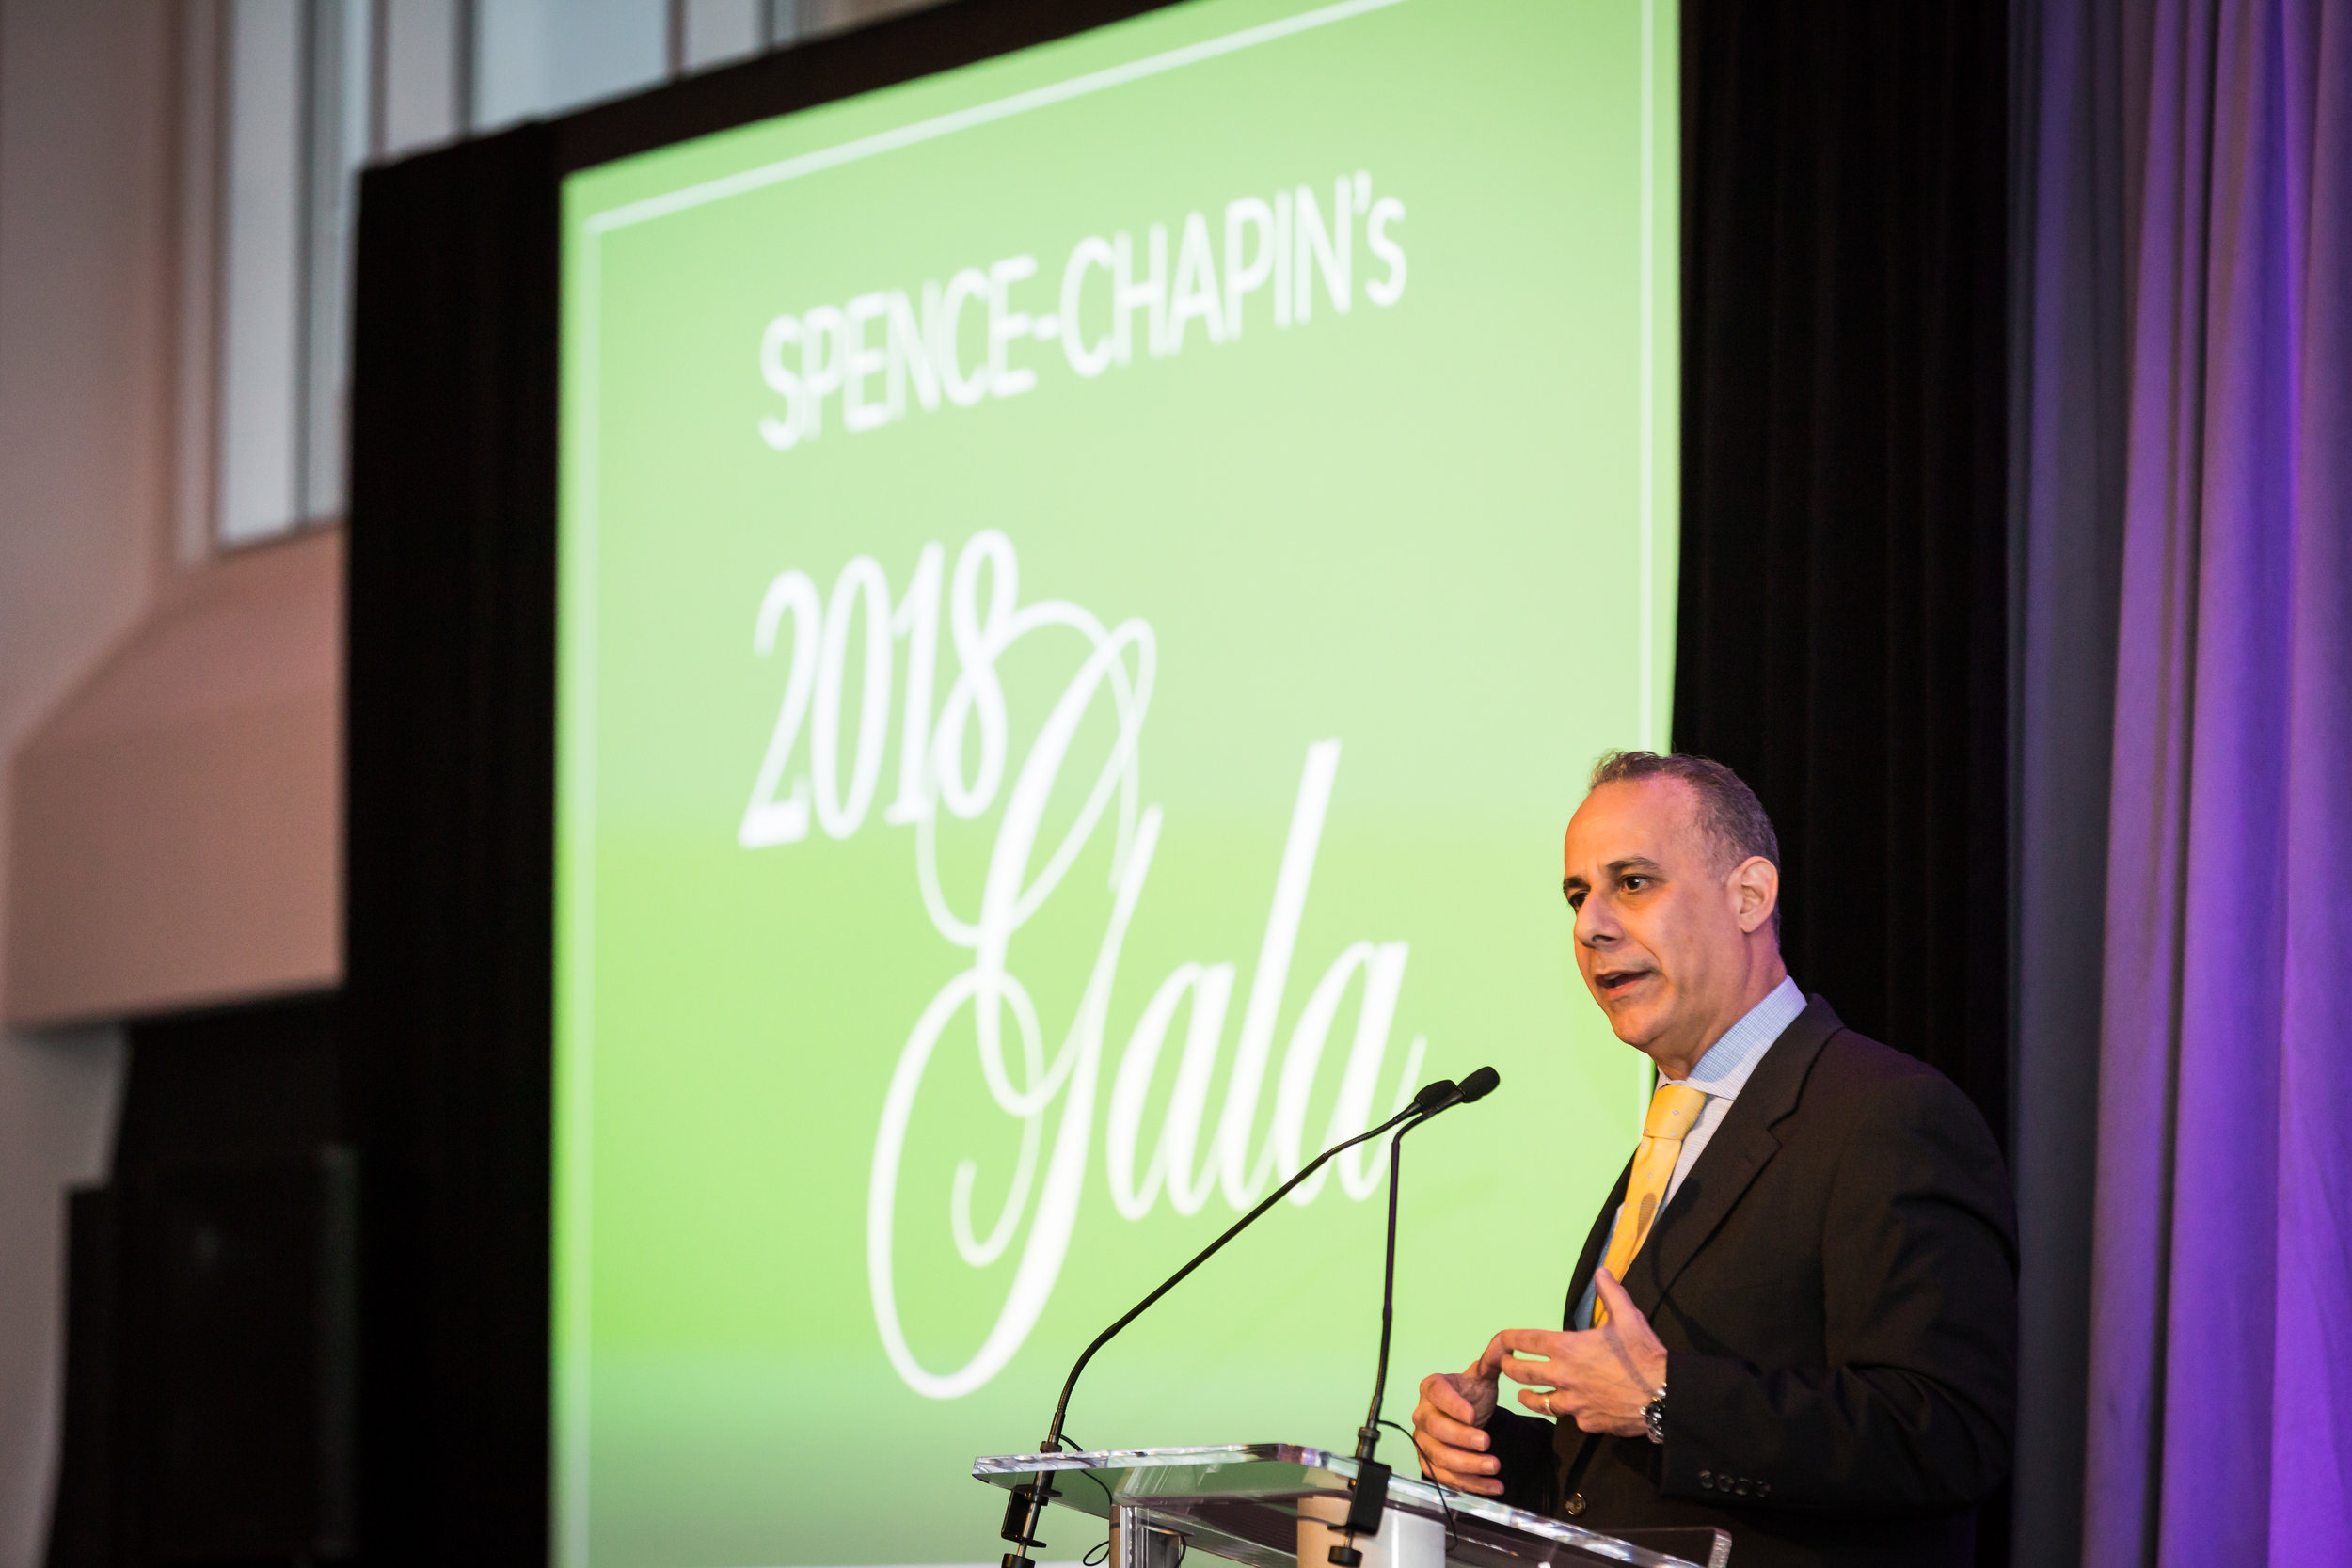 SpenceChapin_AnnualGala_May3_2018-210.jpg